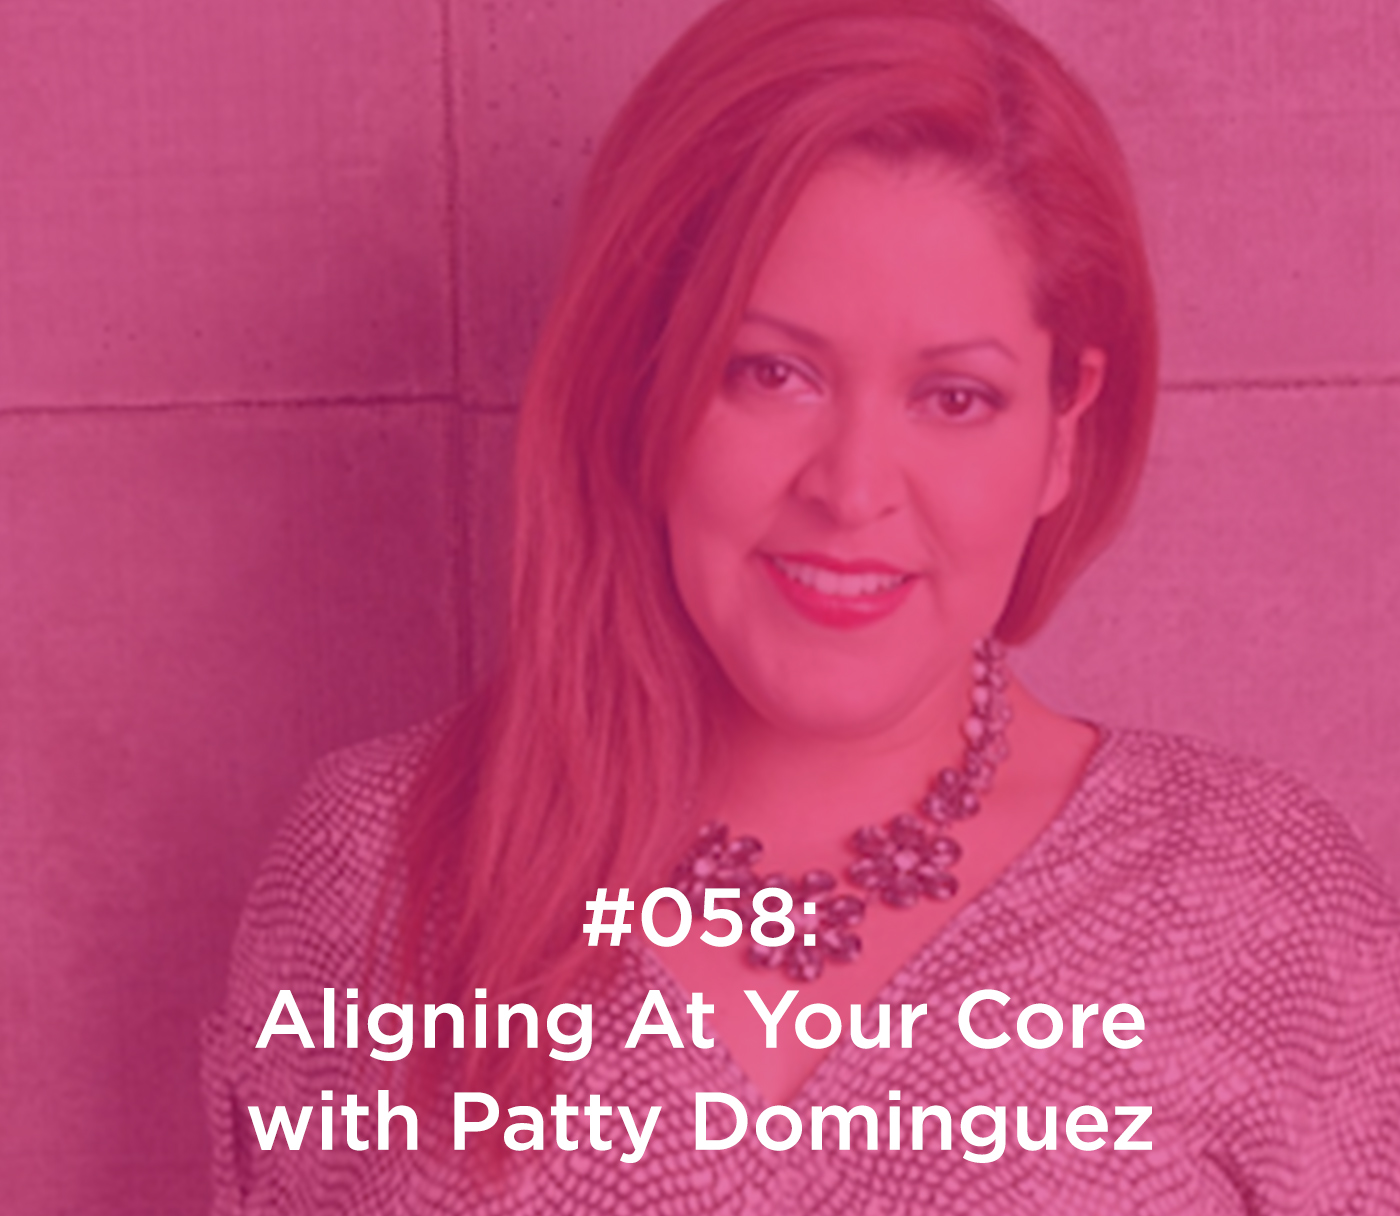 Aligning At Your Core with Patty Dominguez